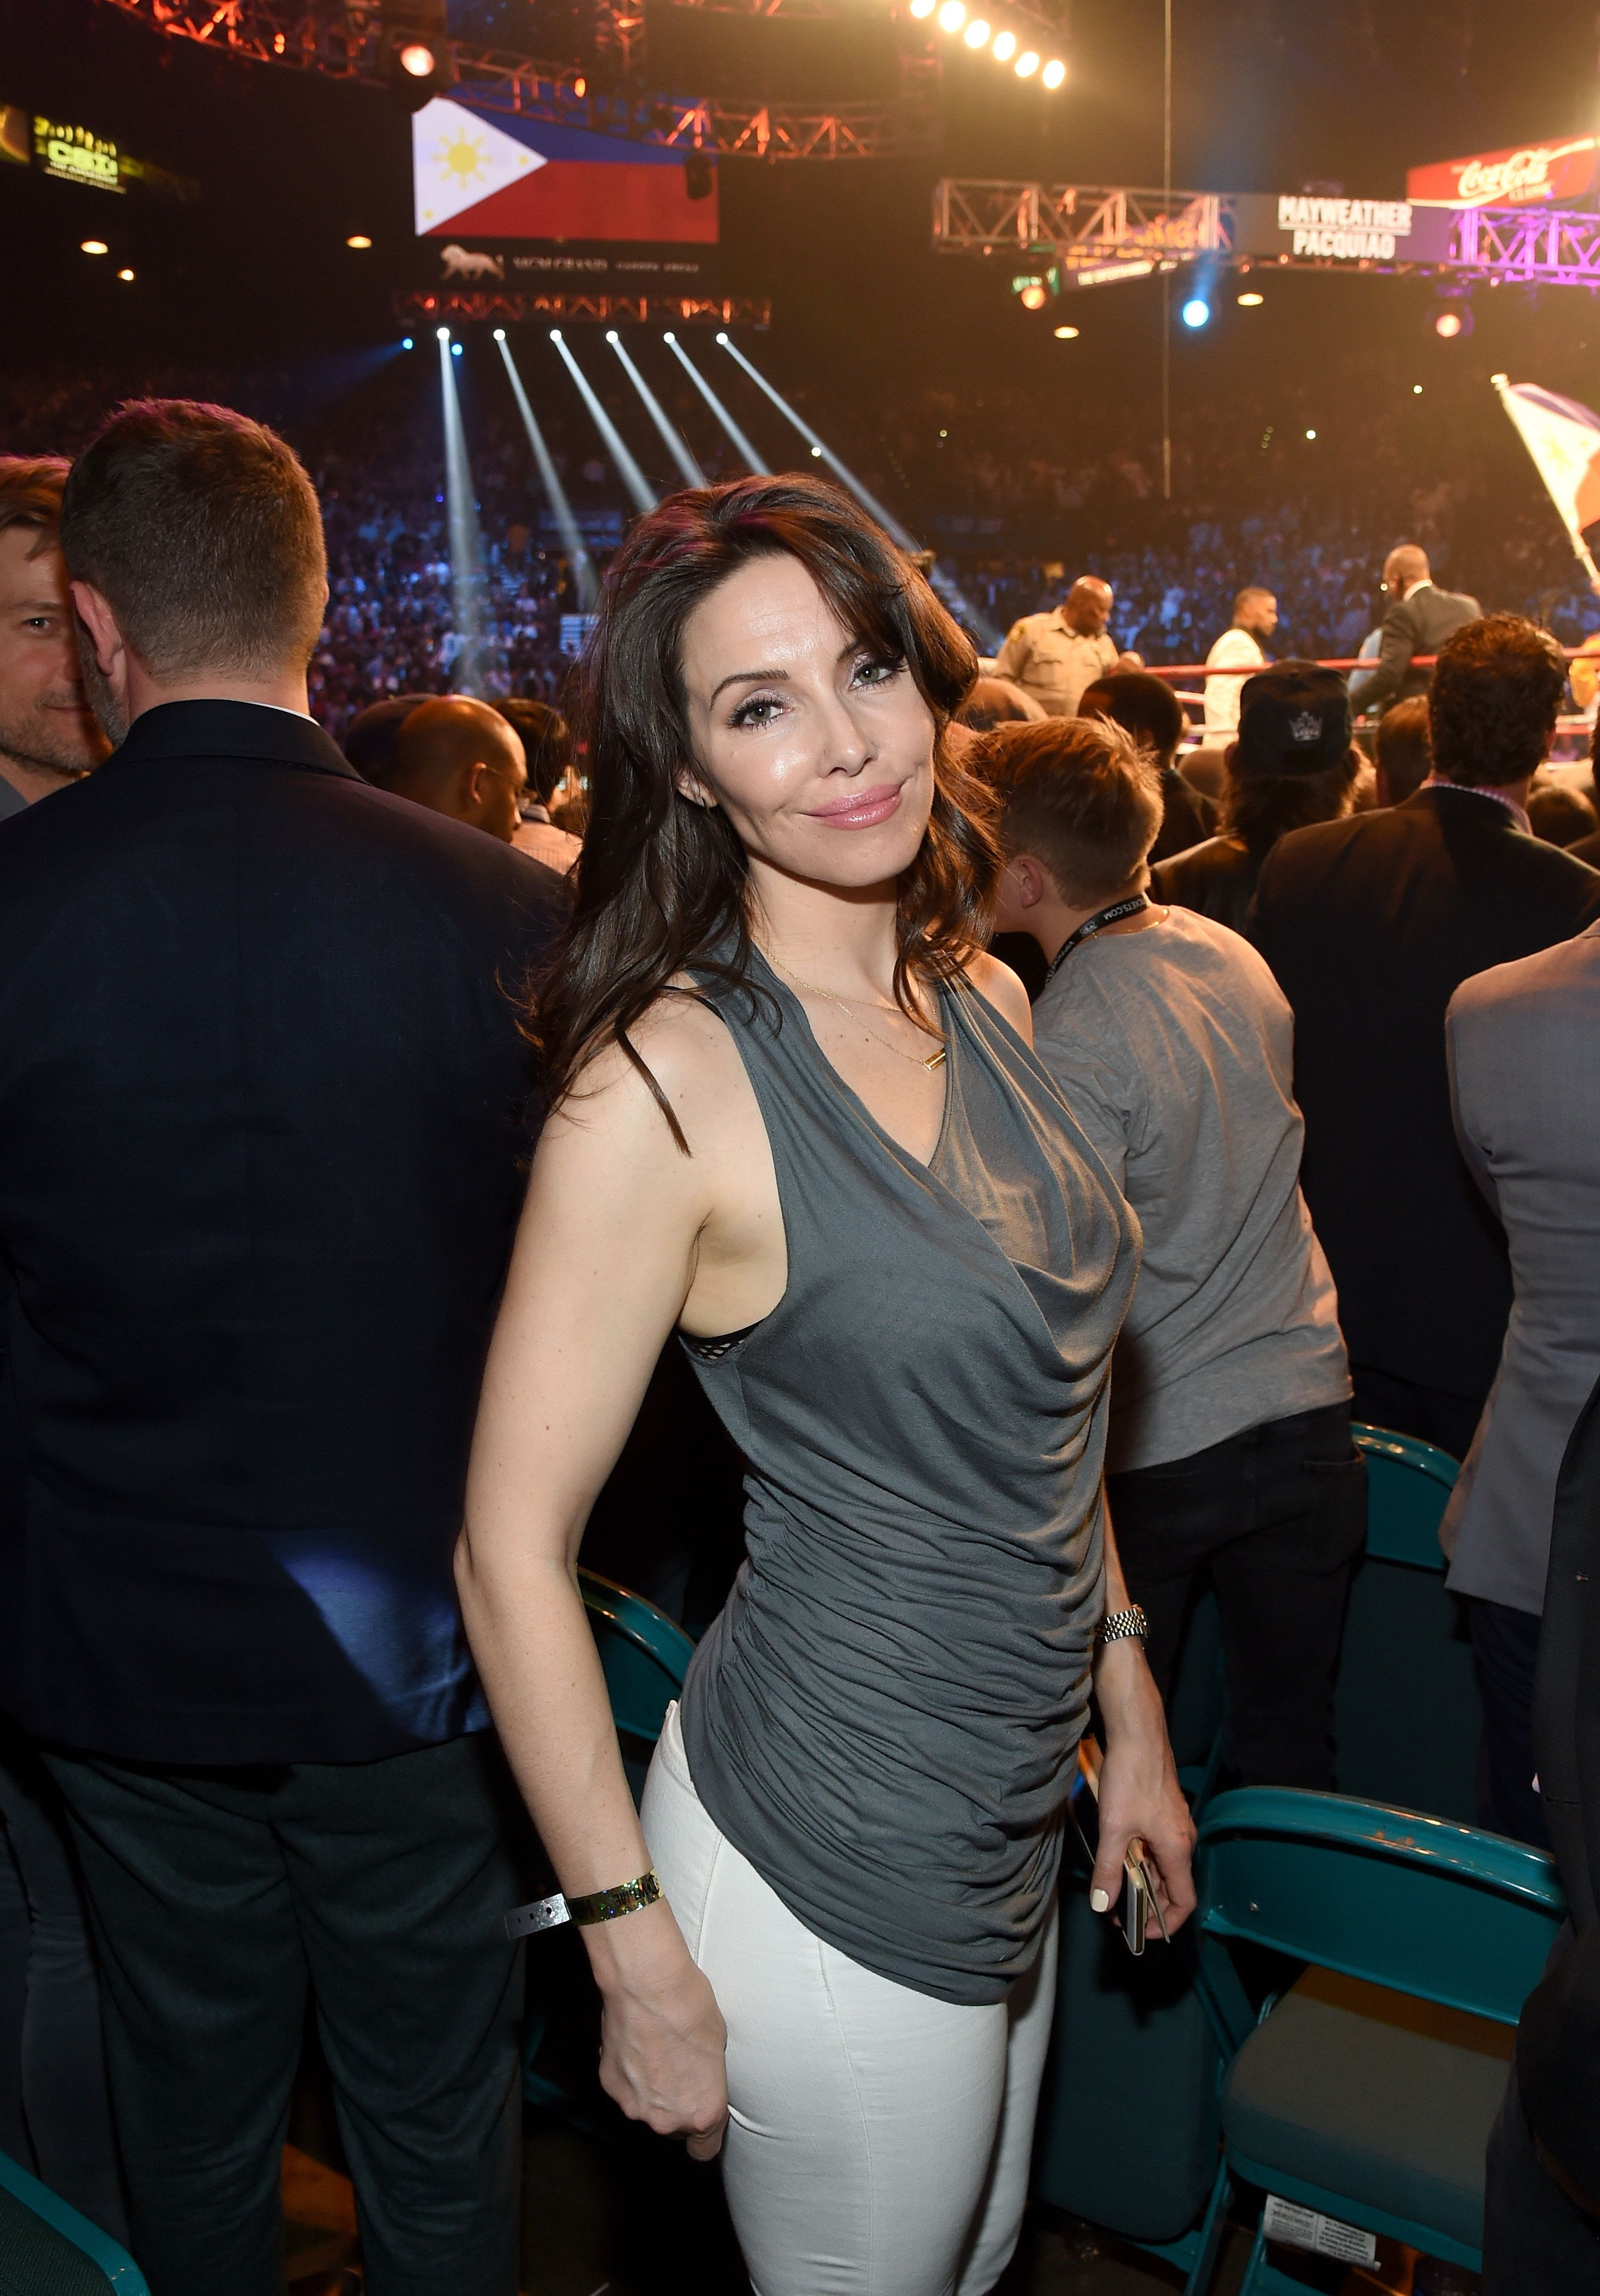 LAS VEGAS, NV - MAY 02:  Comedian Whitney Cummings poses ringside At 'Mayweather VS Pacquiao' presented by SHOWTIME PPV And HBO PPV at MGM Grand Garden Arena on May 2, 2015 in Las Vegas, Nevada.  (Photo by Ethan Miller/Getty Images for SHOWTIME)